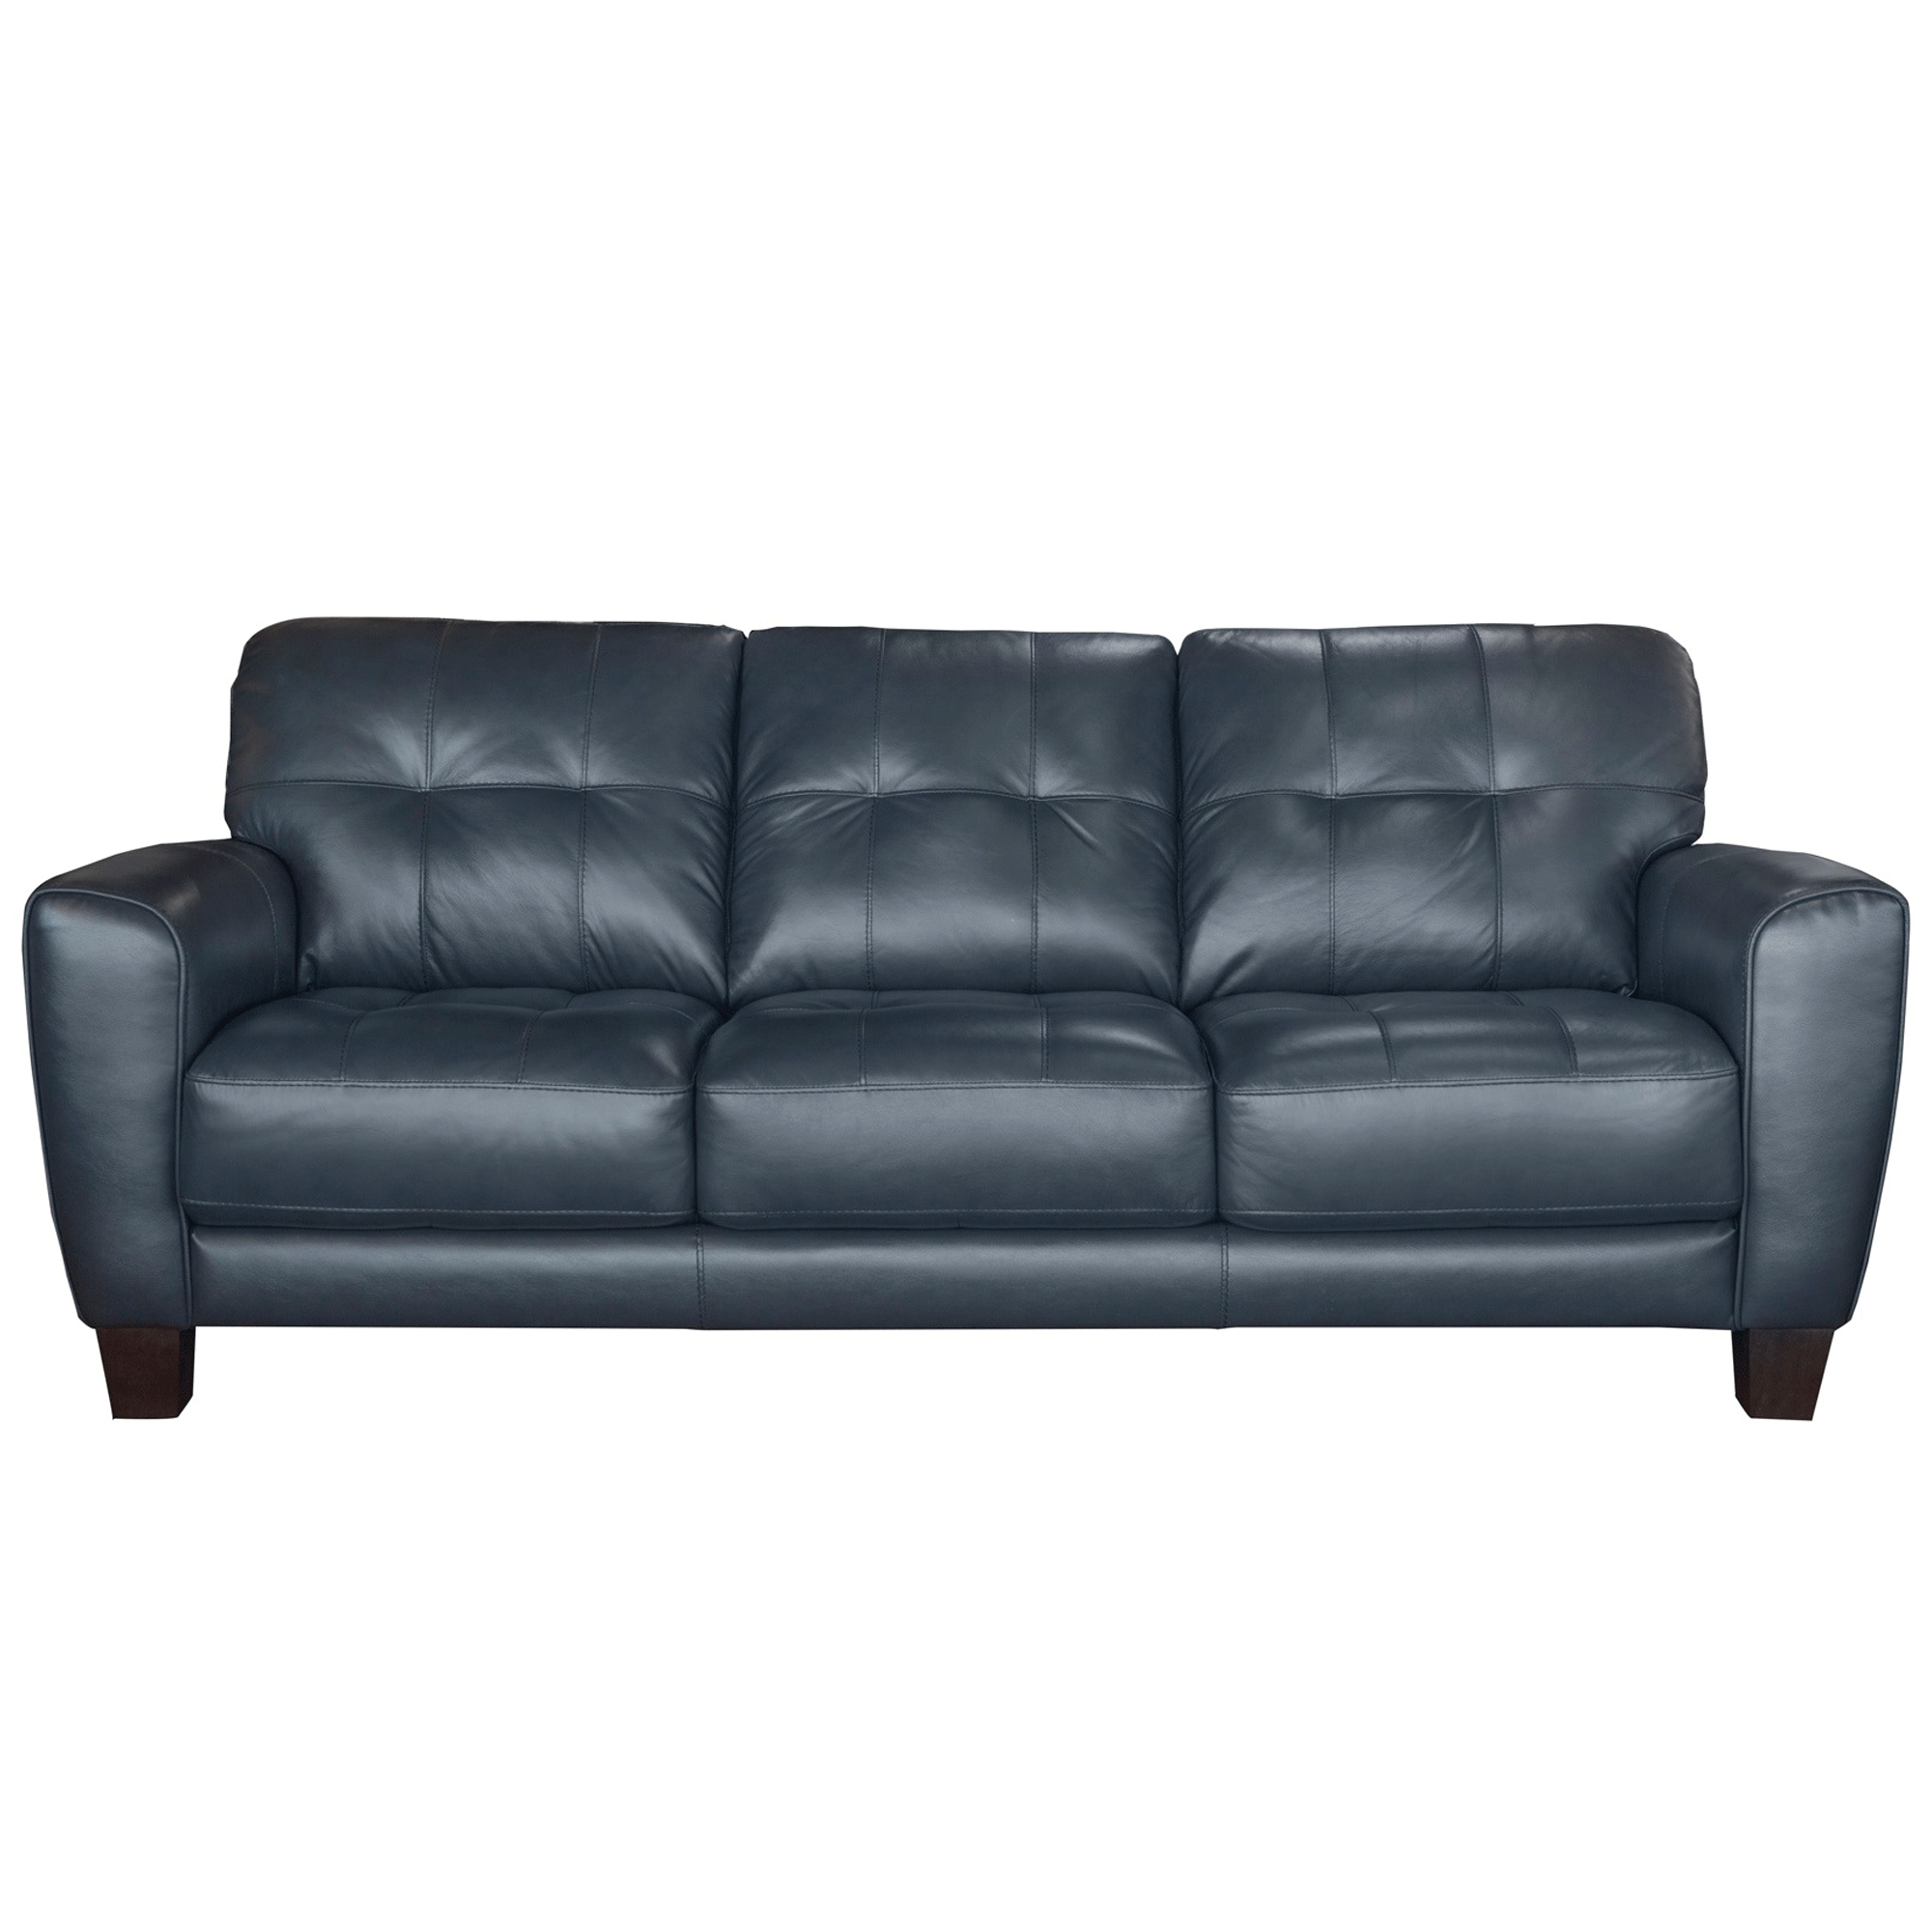 Sofa Living Room Ikea Ektorp Tapestry Furniture Sectional Layout In Sectional Sofas In Philippines (View 6 of 10)